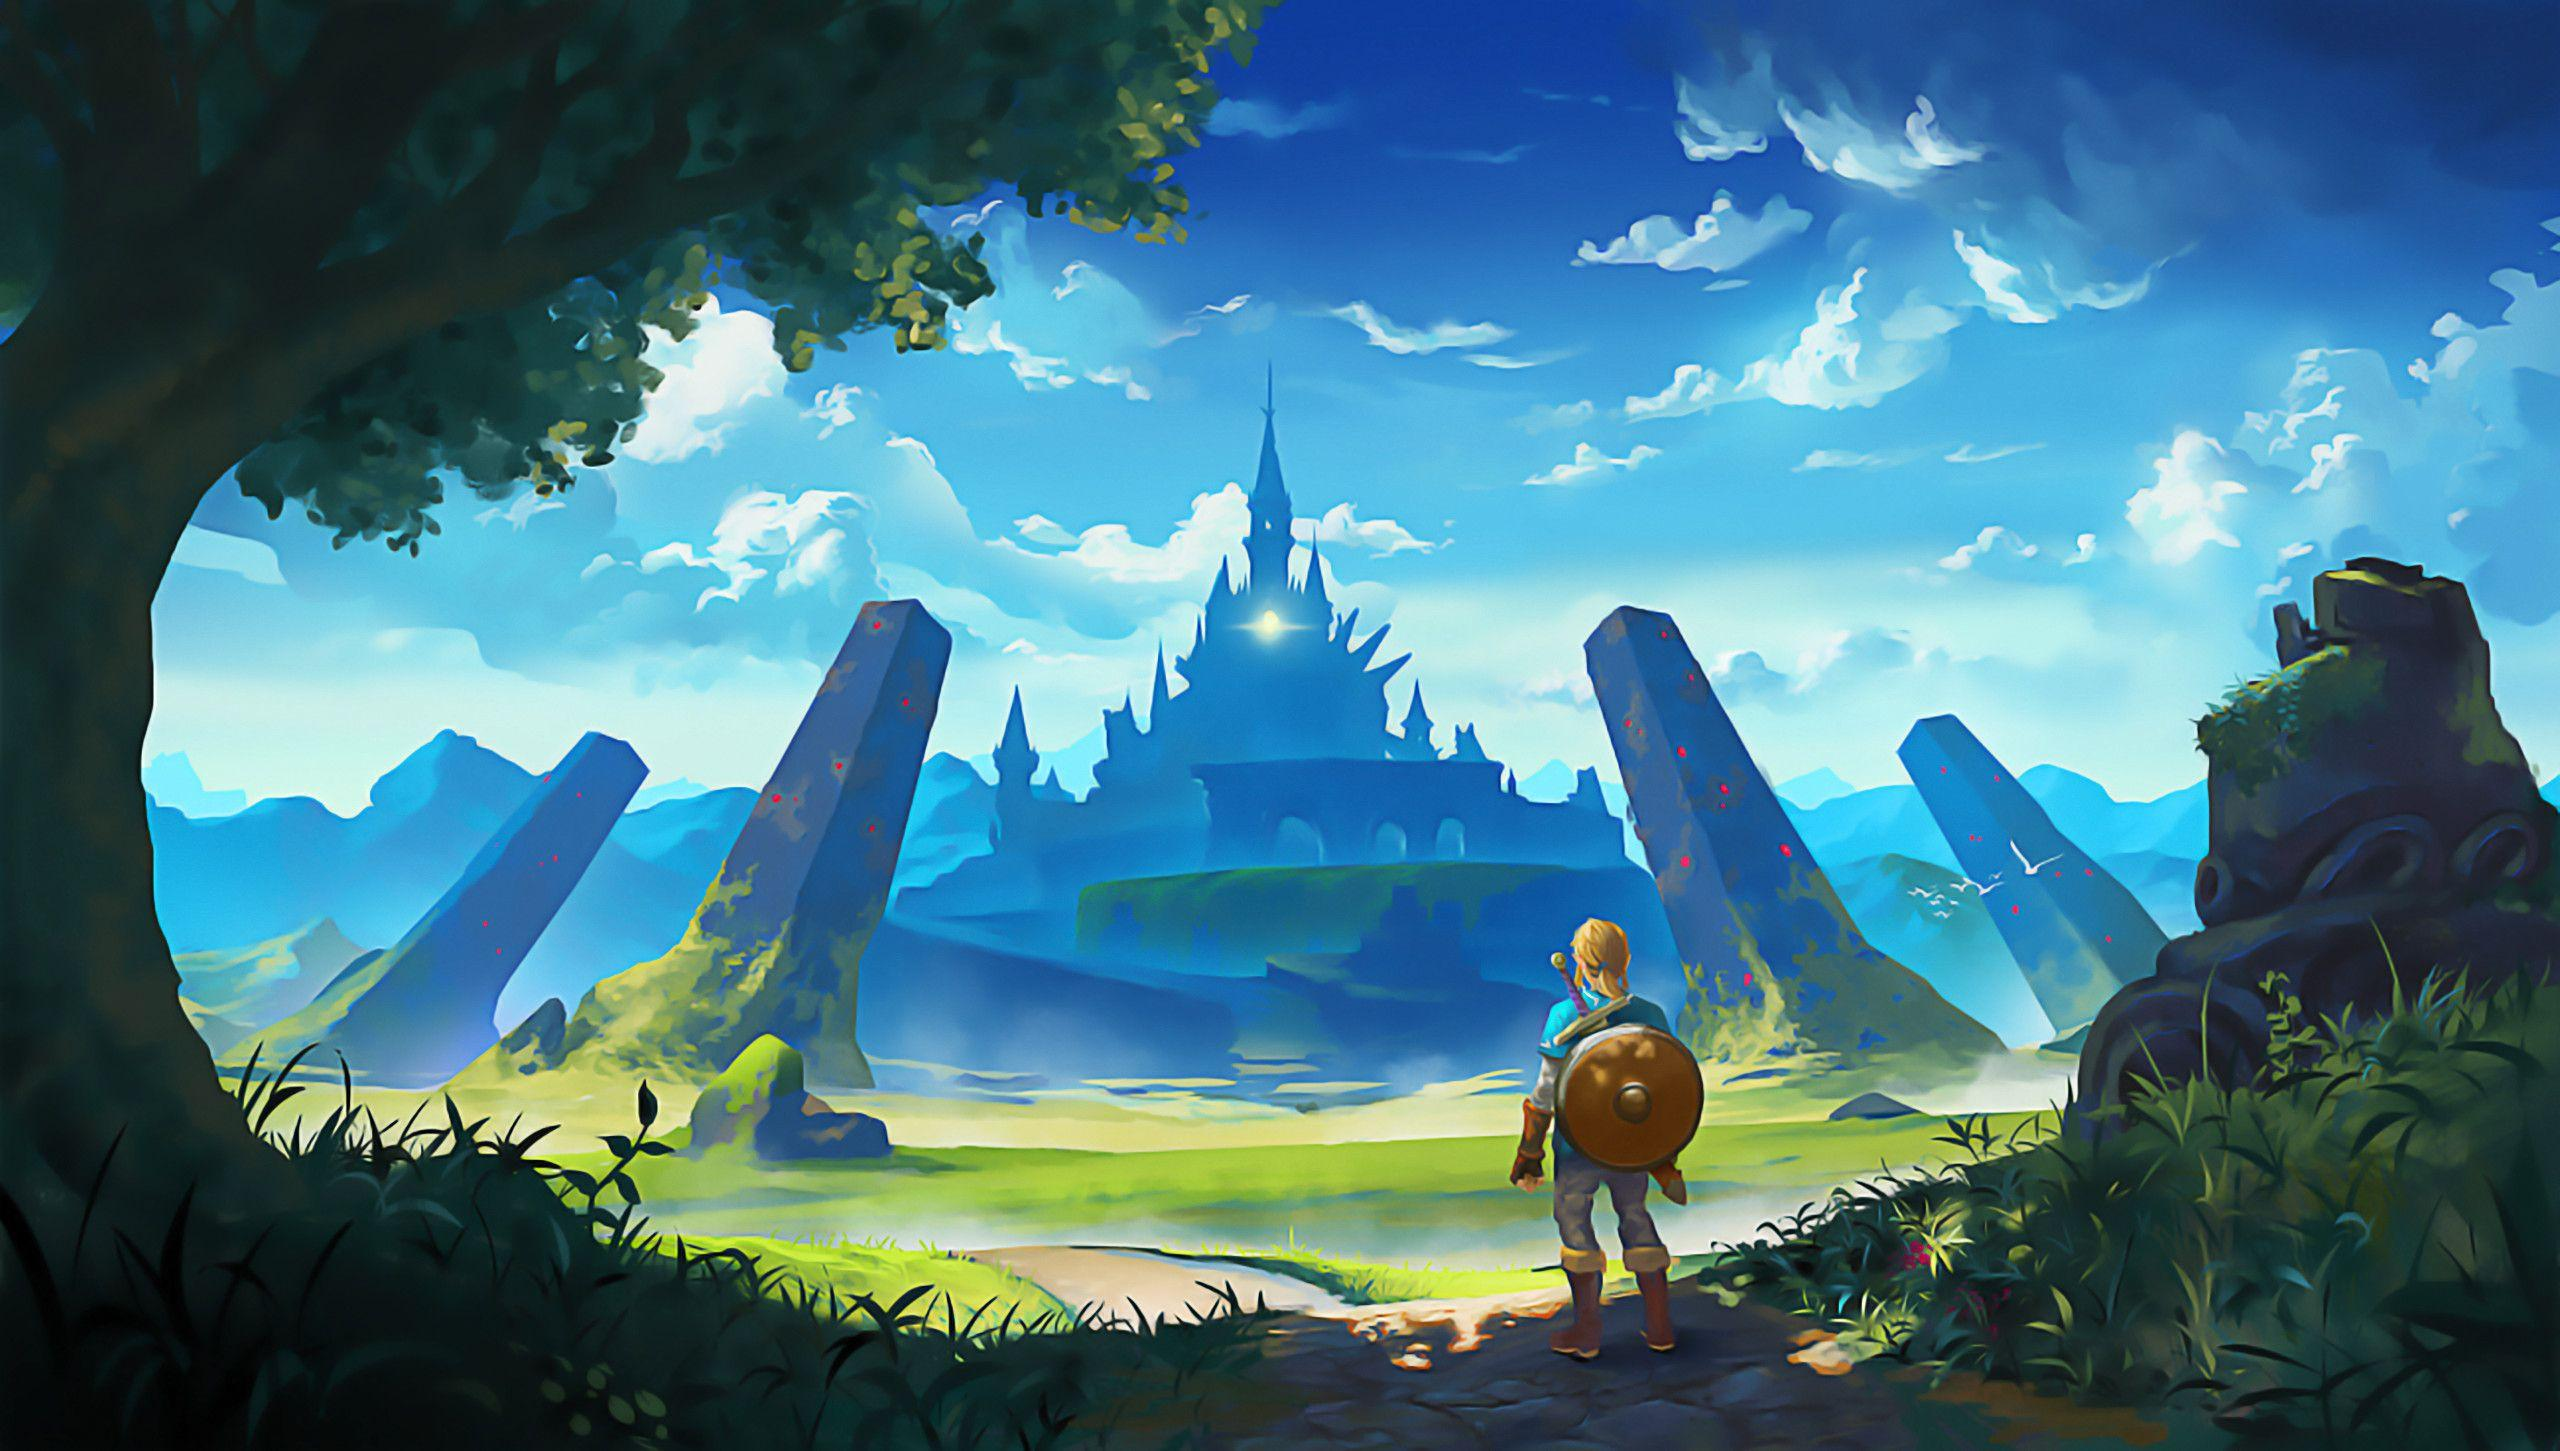 Botw wallpaper Theme – Cool Wallpapers For Kids Rooms